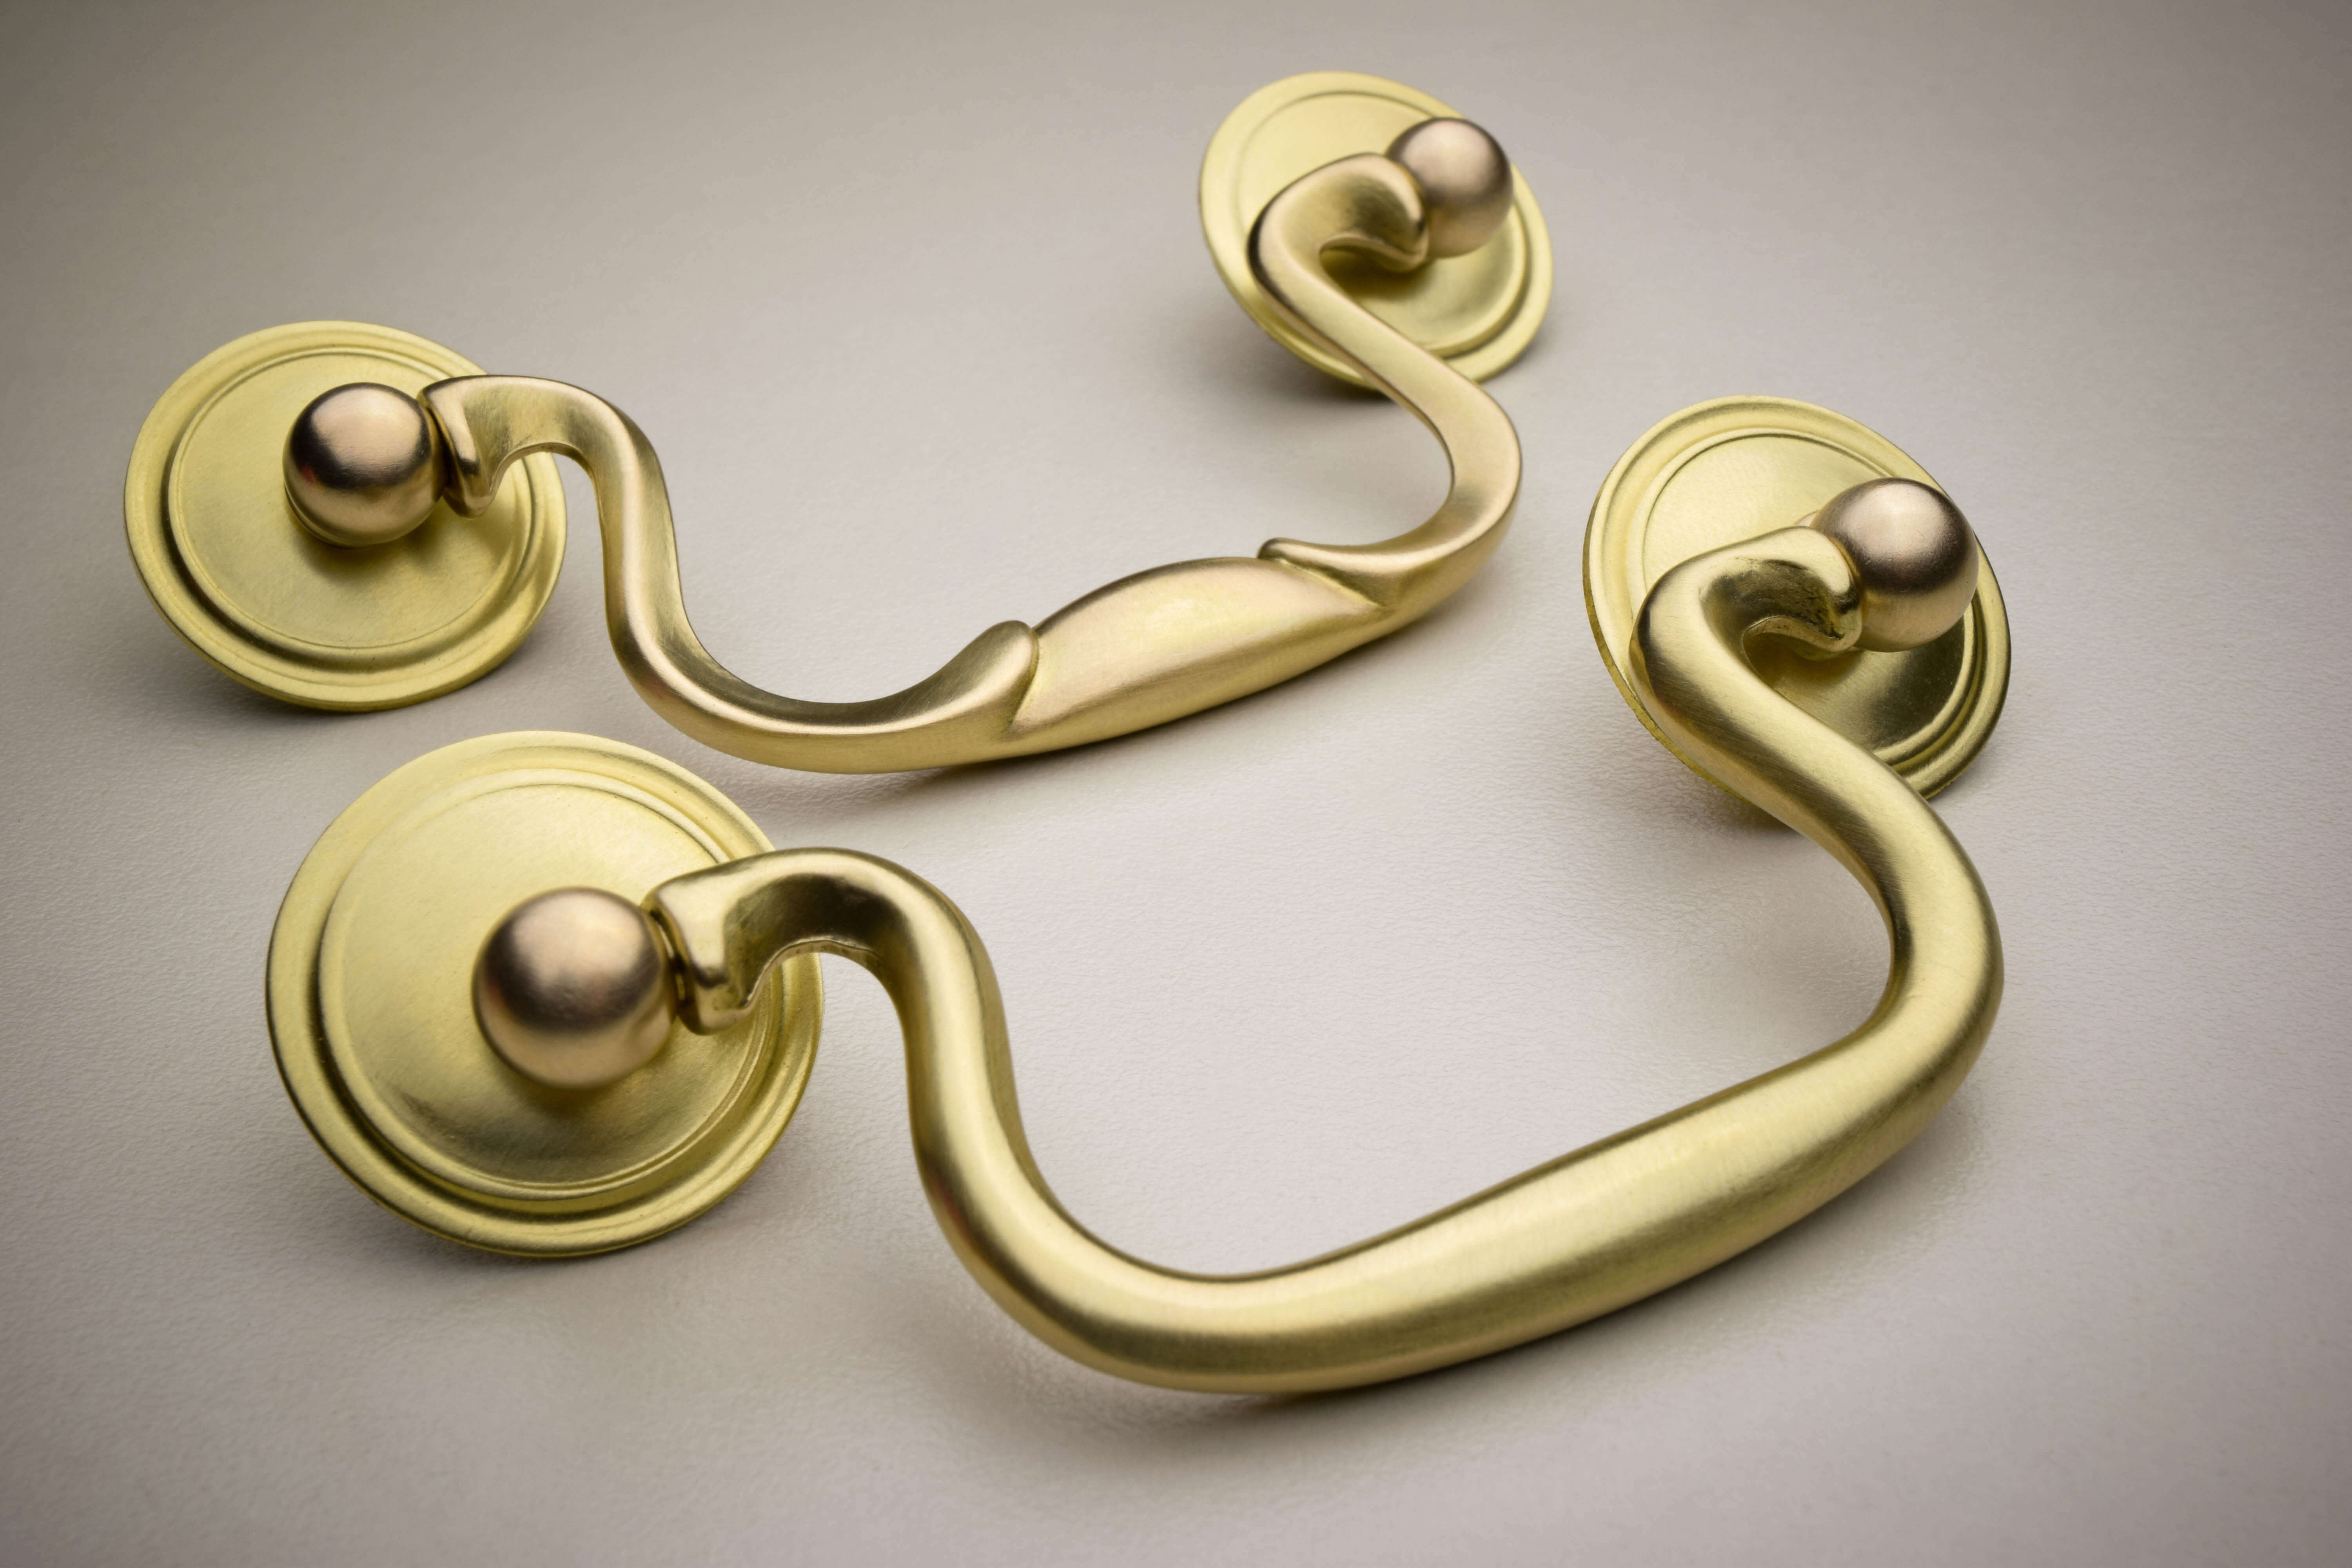 Brass hardware in a matte finish